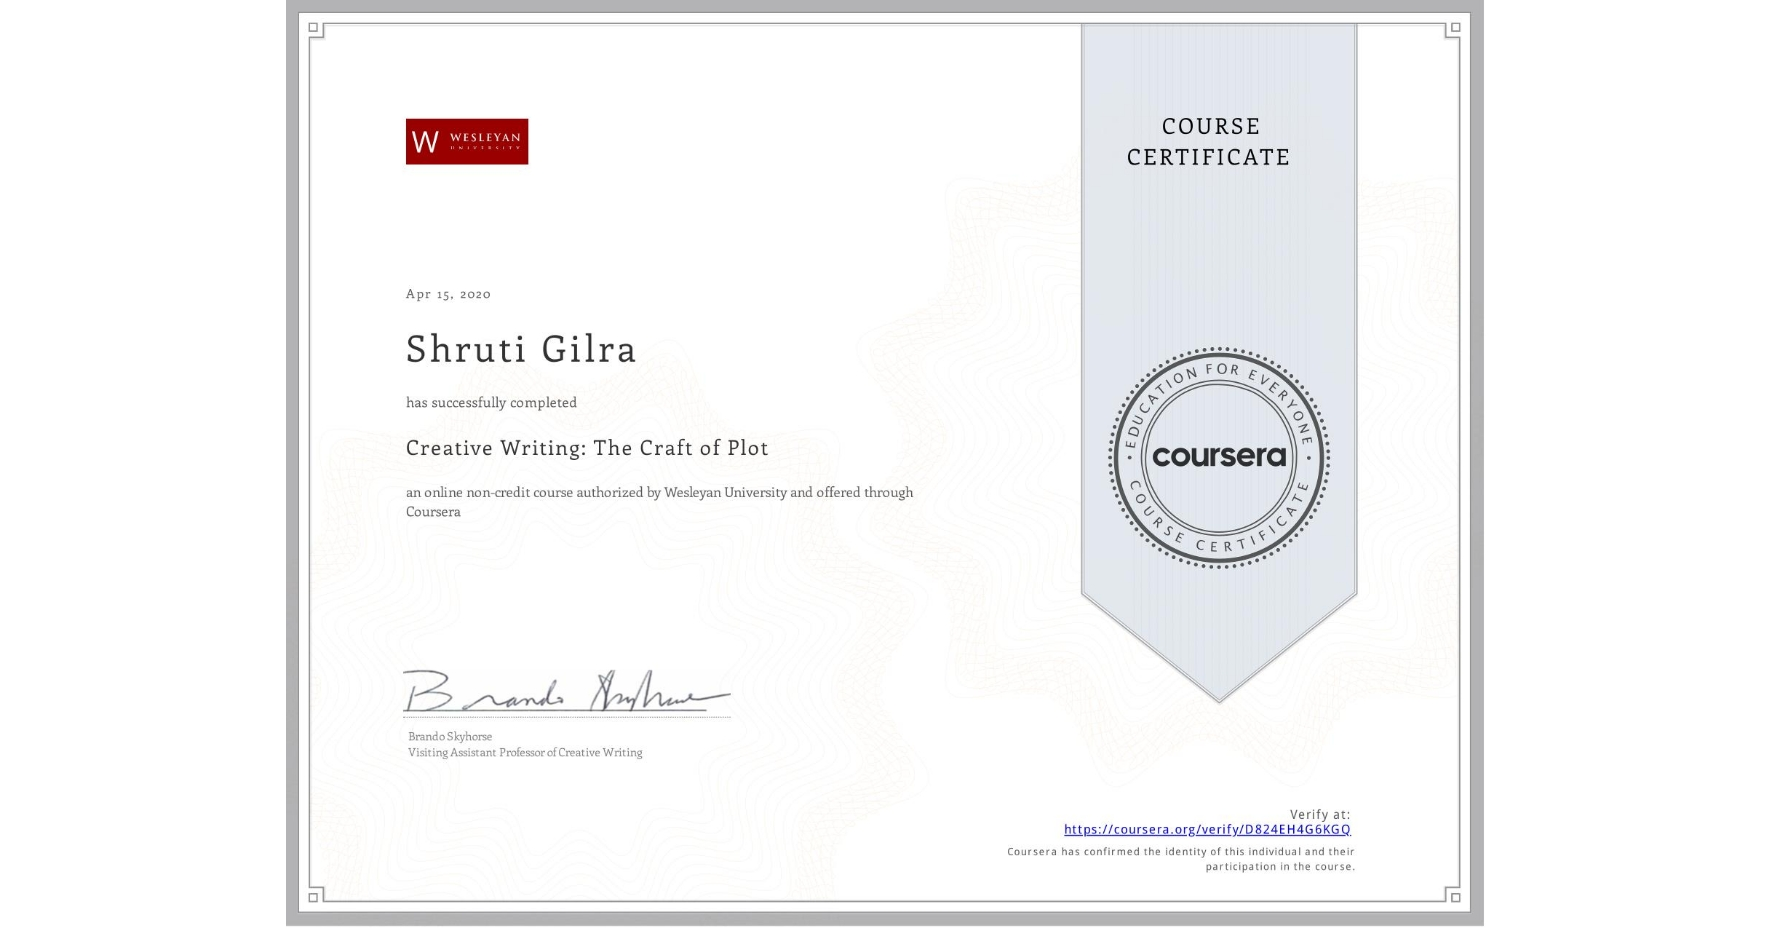 View certificate for Shruti Gilra, Creative Writing: The Craft of Plot, an online non-credit course authorized by Wesleyan University and offered through Coursera